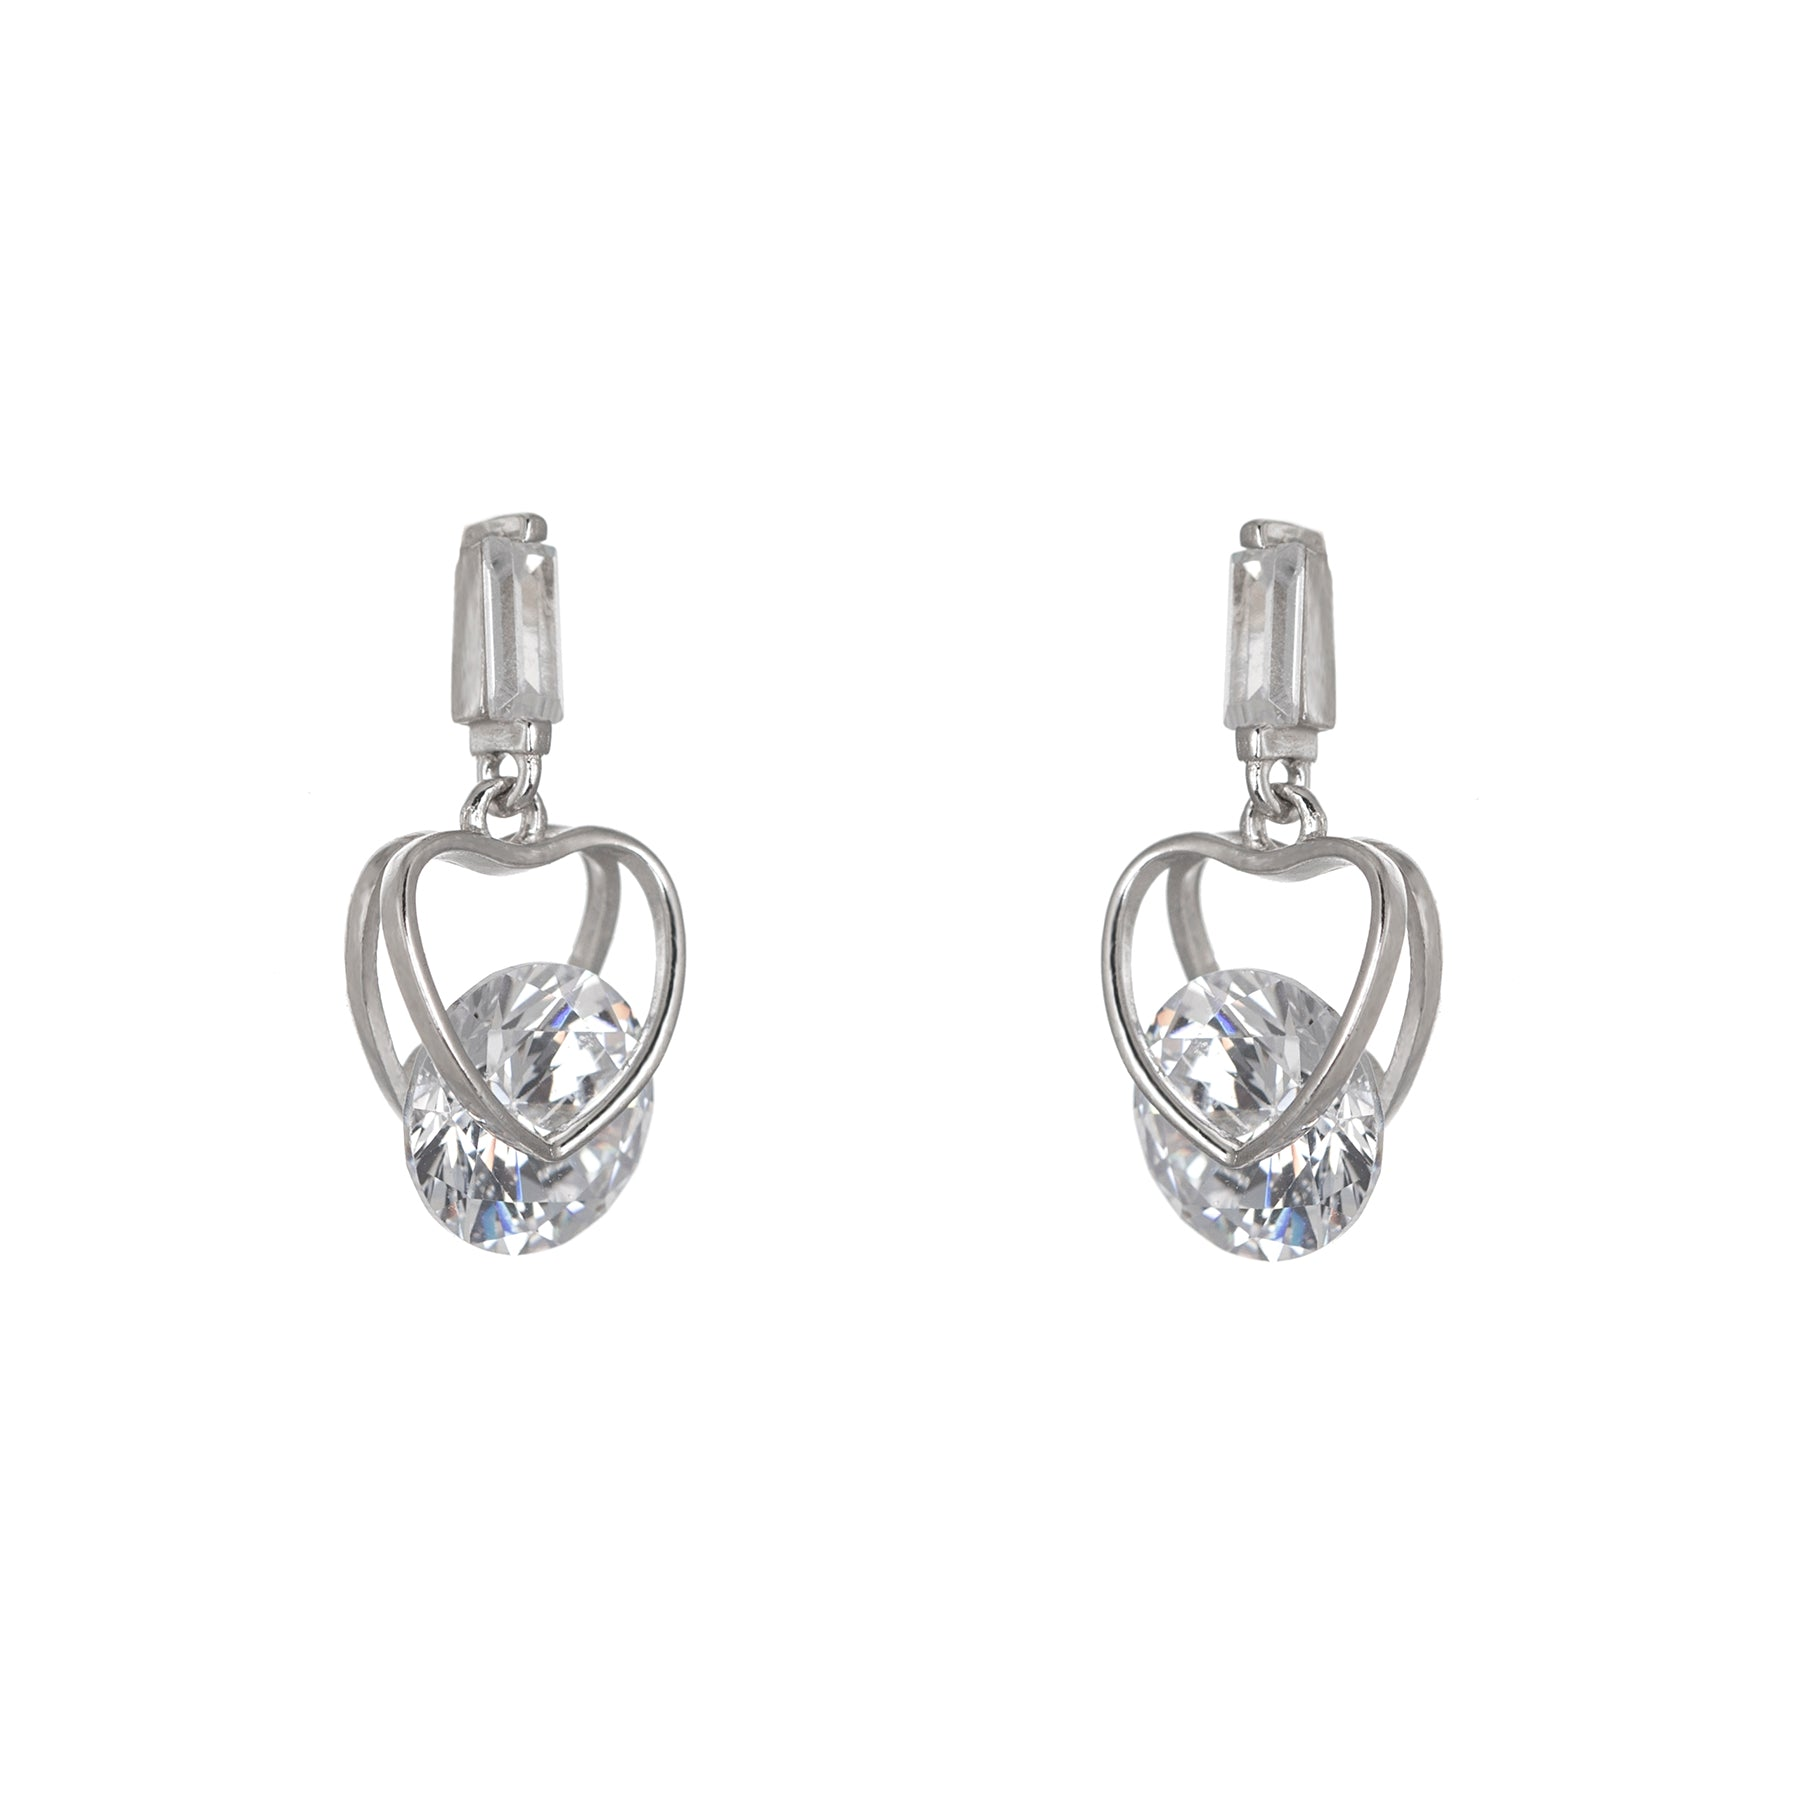 Sparkly heart silhouette dropper earrings